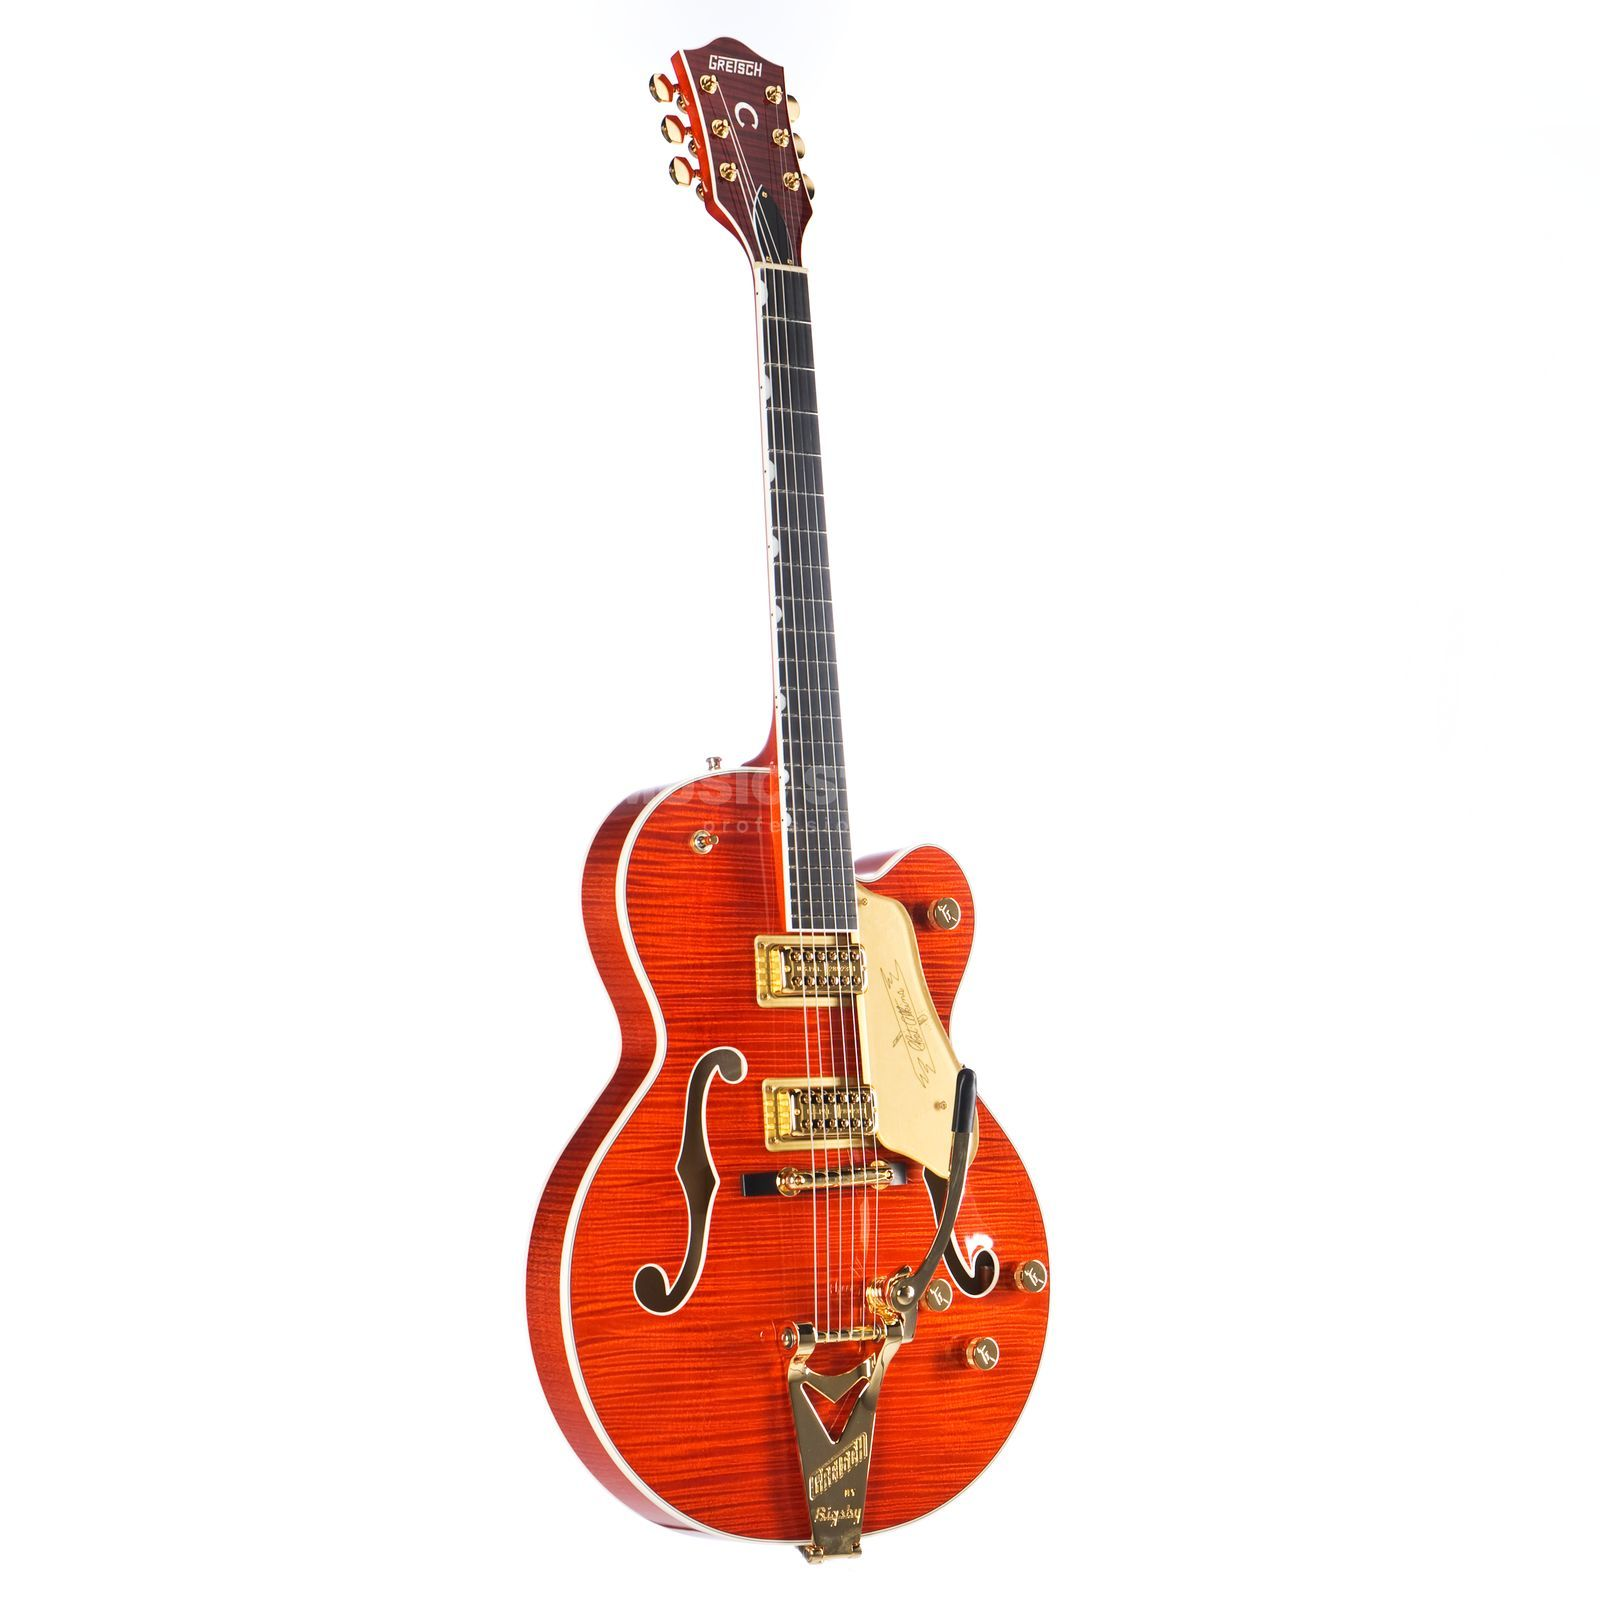 Gretsch G6120TFM Players Edition Nashville Bigsby Flame Maple Orange Stain Image du produit